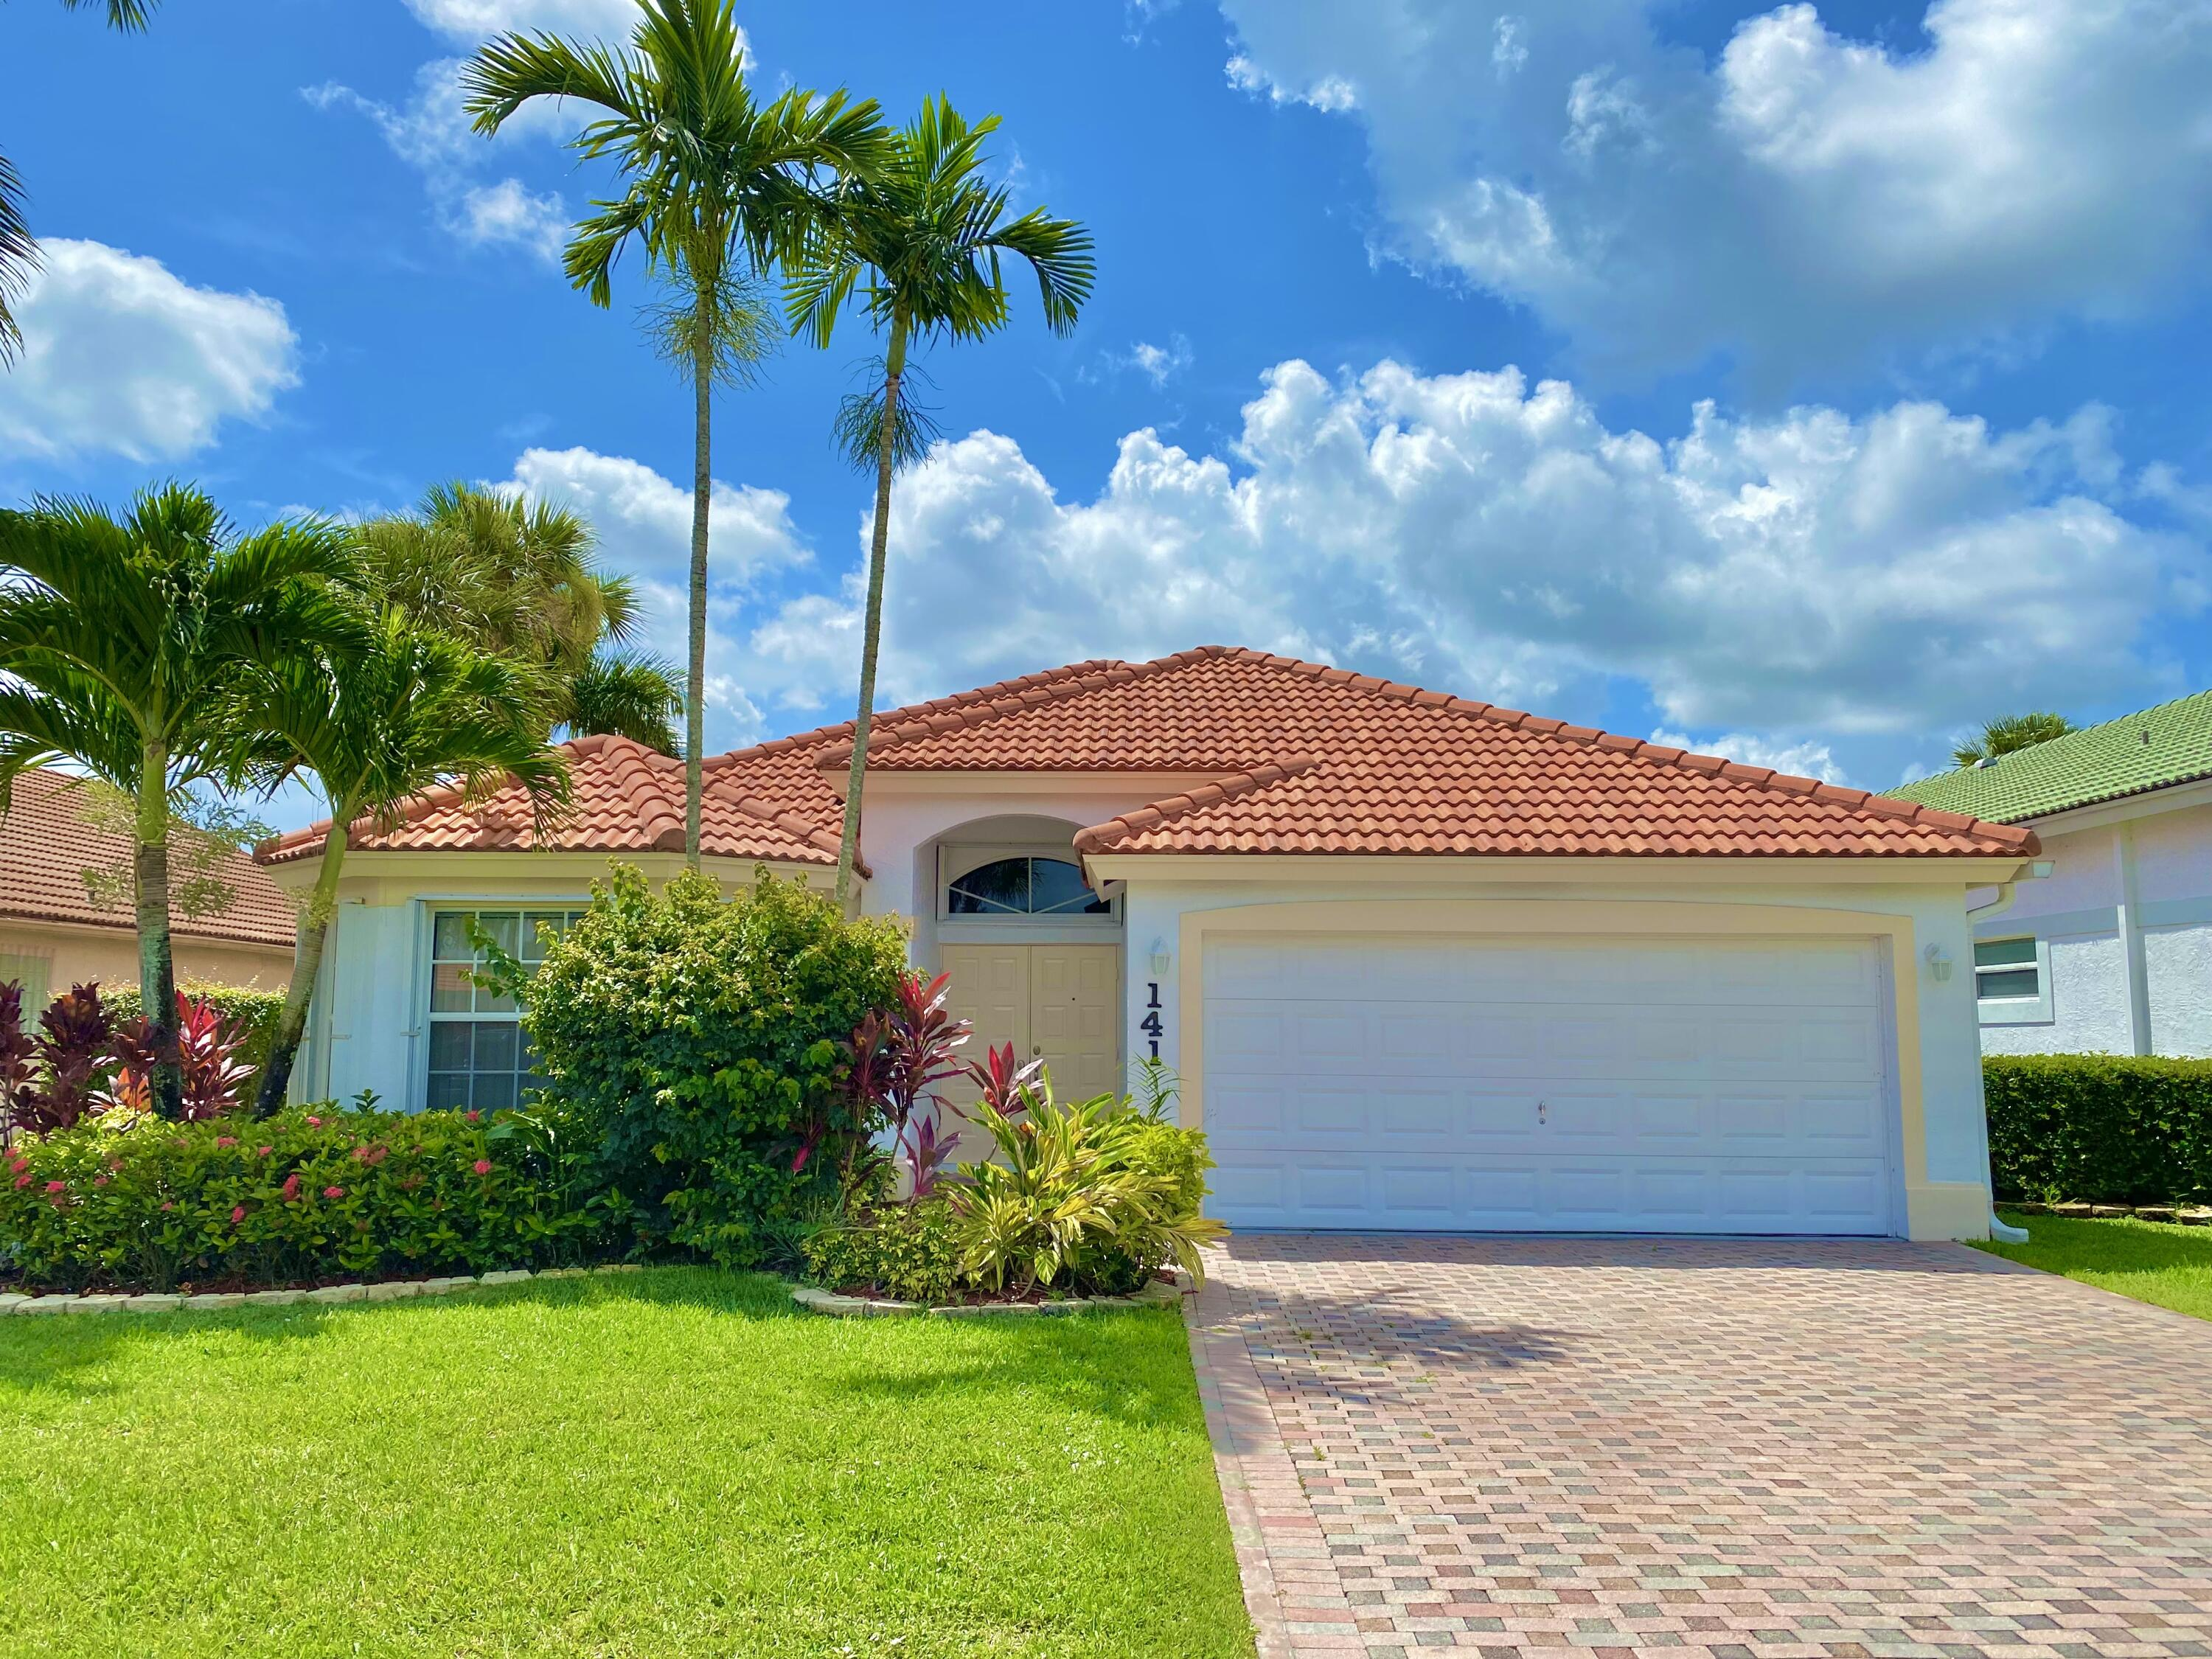 Home for sale in Saratoga Lakes Royal Palm Beach Florida